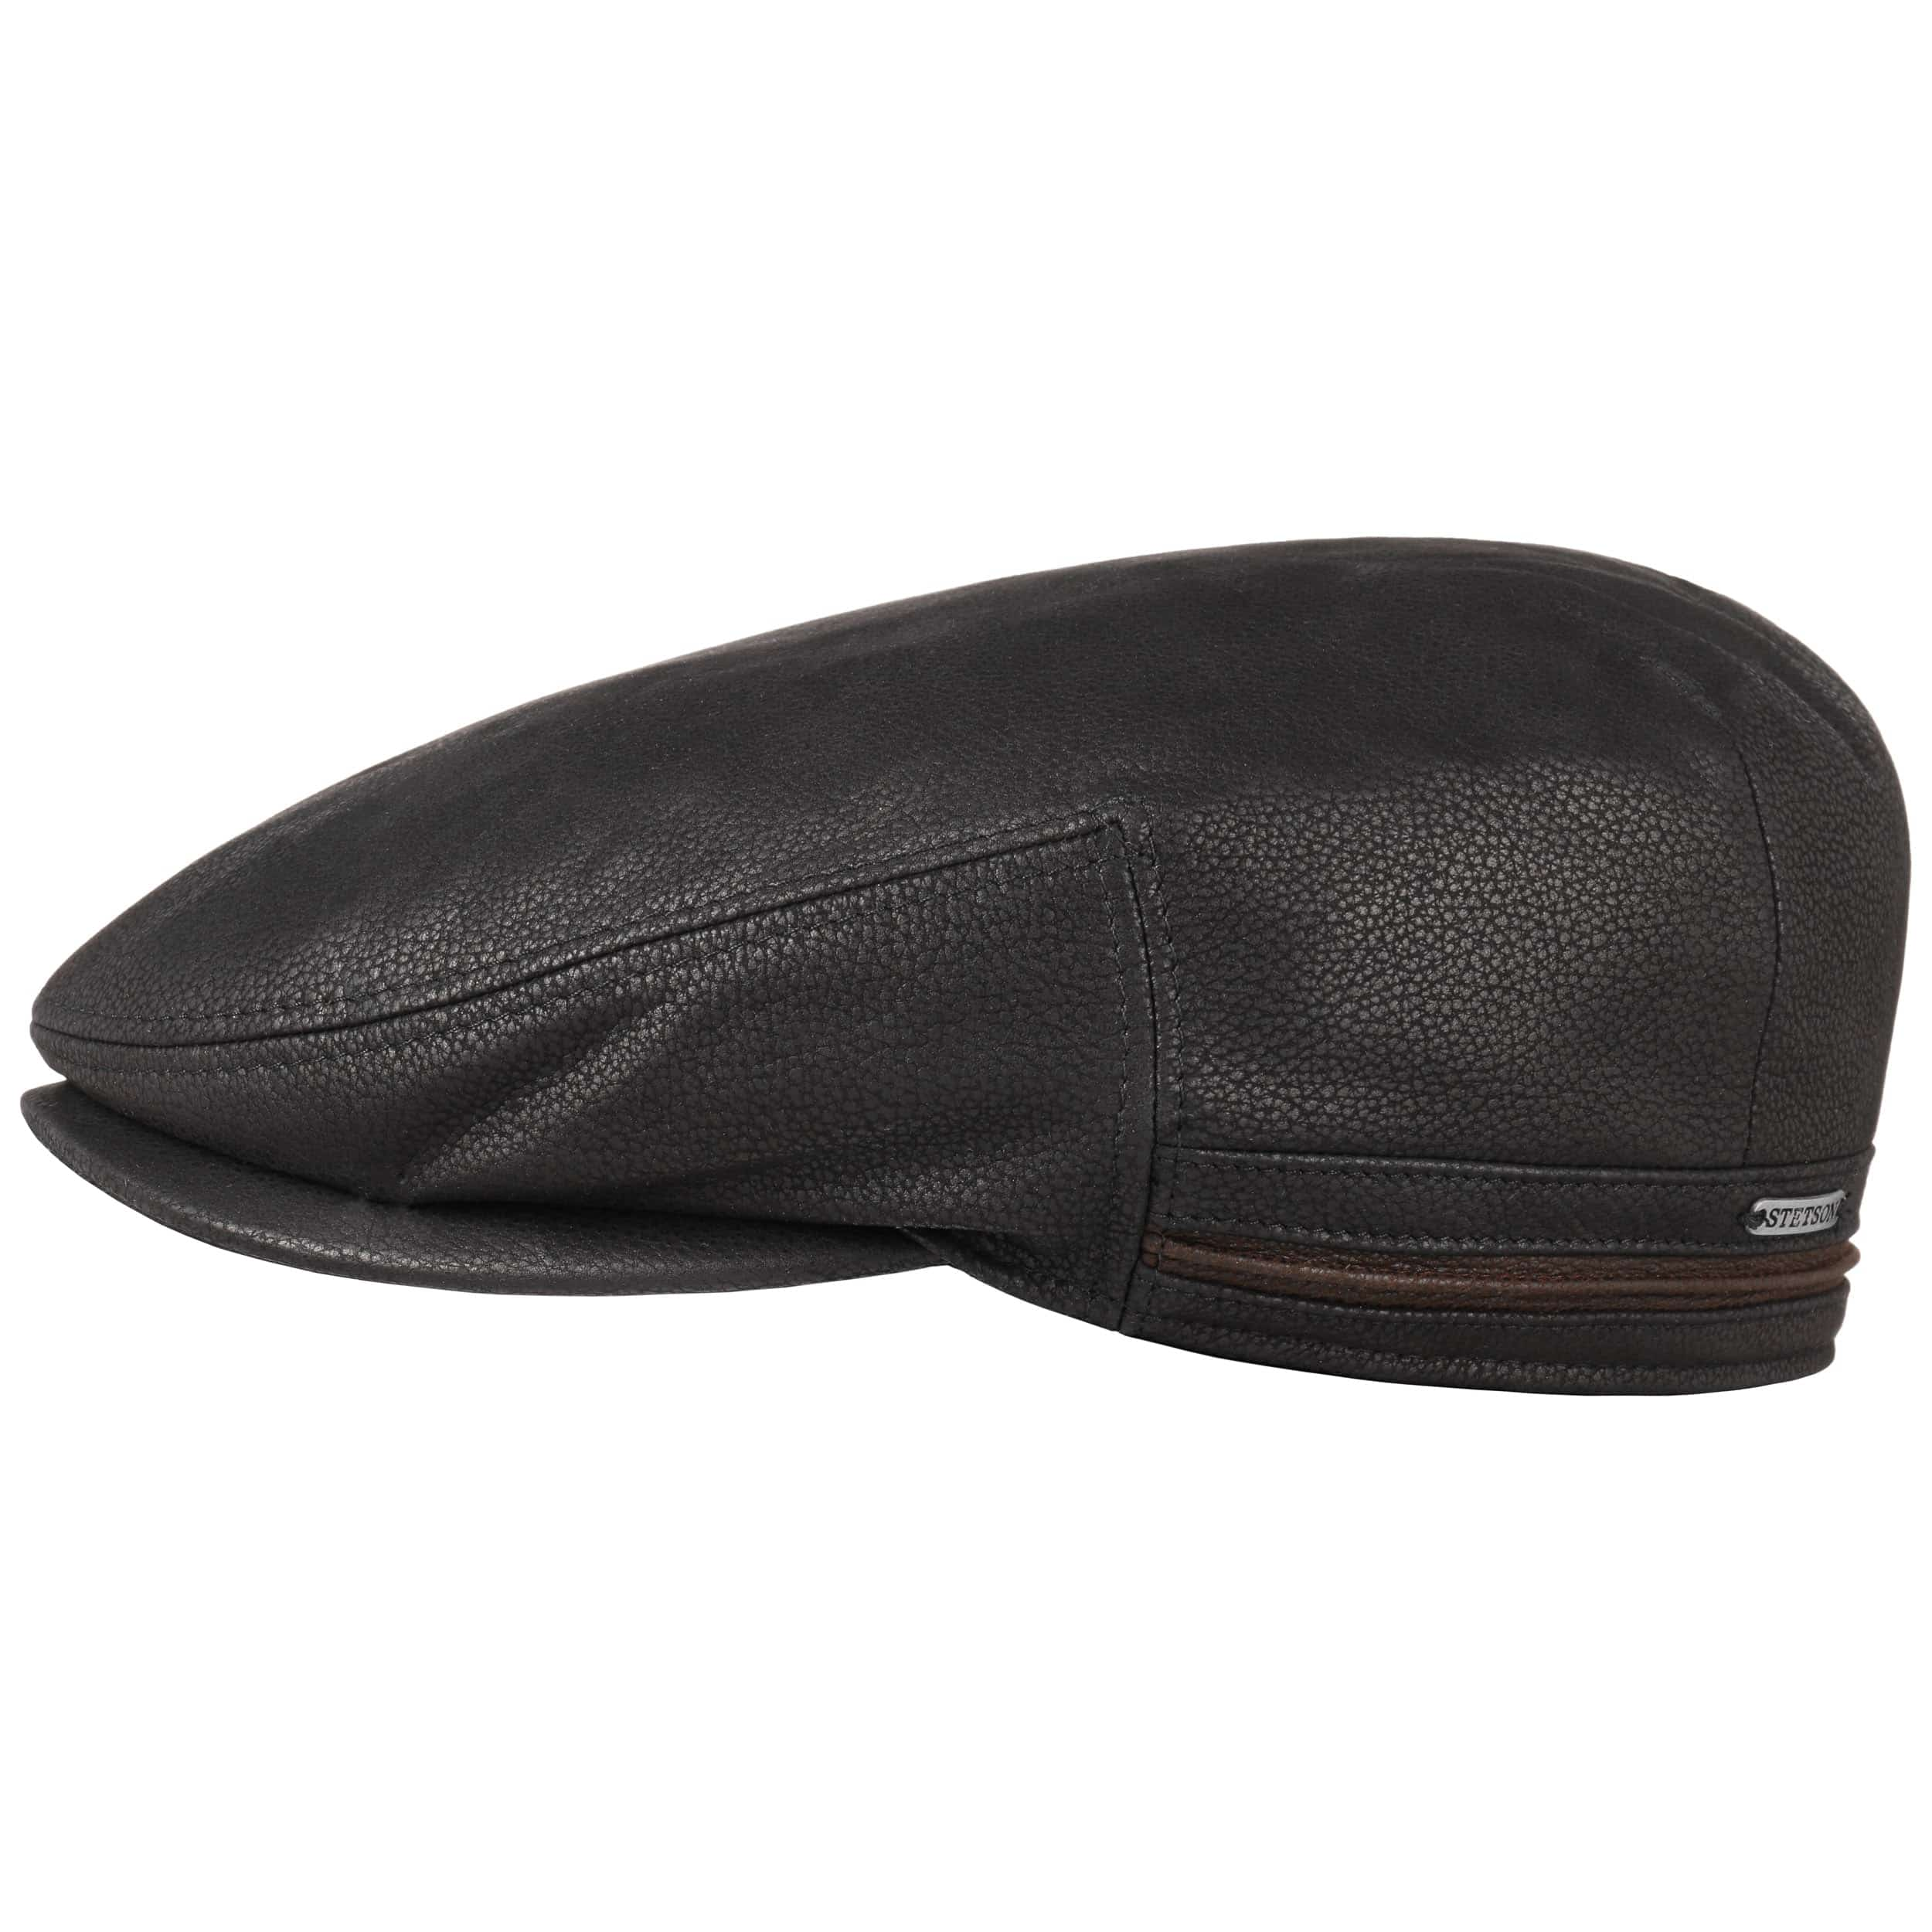 306c9568 ... brown 6 · Kent Earflaps Leather Flat Cap by Stetson - black 1 ...